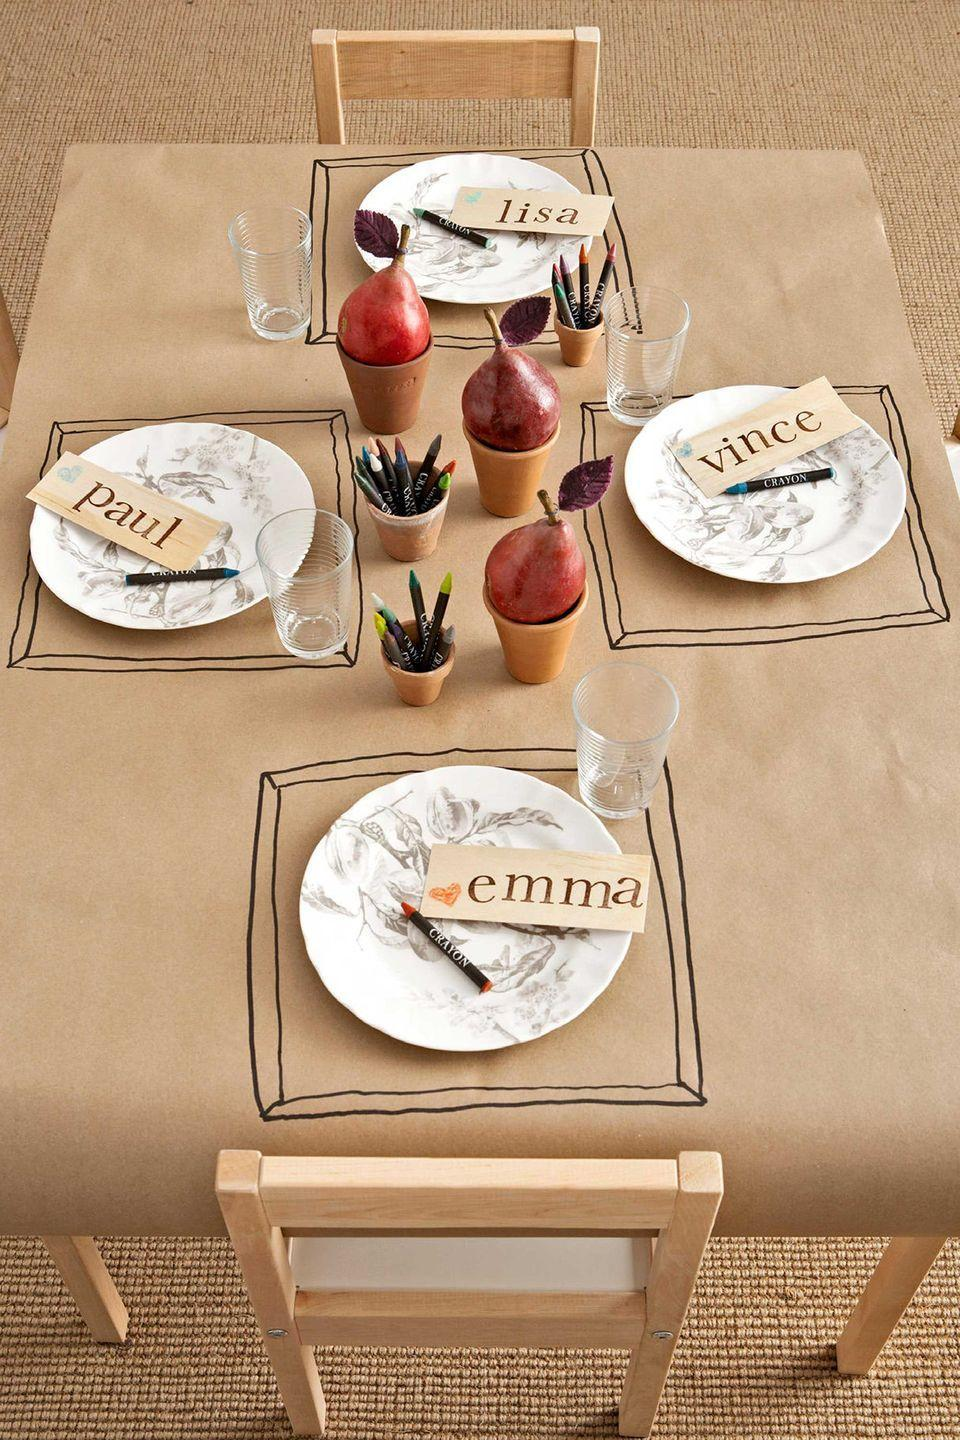 """<p>A roll of kraft paper makes a fun tablecloth for the kids' table—make sure to set out terra-cotta pots filled with crayons (and pears, for decoration). </p><p><a class=""""link rapid-noclick-resp"""" href=""""https://www.amazon.com/Kraft-Paper-Roll-150ft-Brown/dp/B01N6584SD/?tag=syn-yahoo-20&ascsubtag=%5Bartid%7C10050.g.1371%5Bsrc%7Cyahoo-us"""" rel=""""nofollow noopener"""" target=""""_blank"""" data-ylk=""""slk:SHOP KRAFT PAPER"""">SHOP KRAFT PAPER</a><br></p>"""